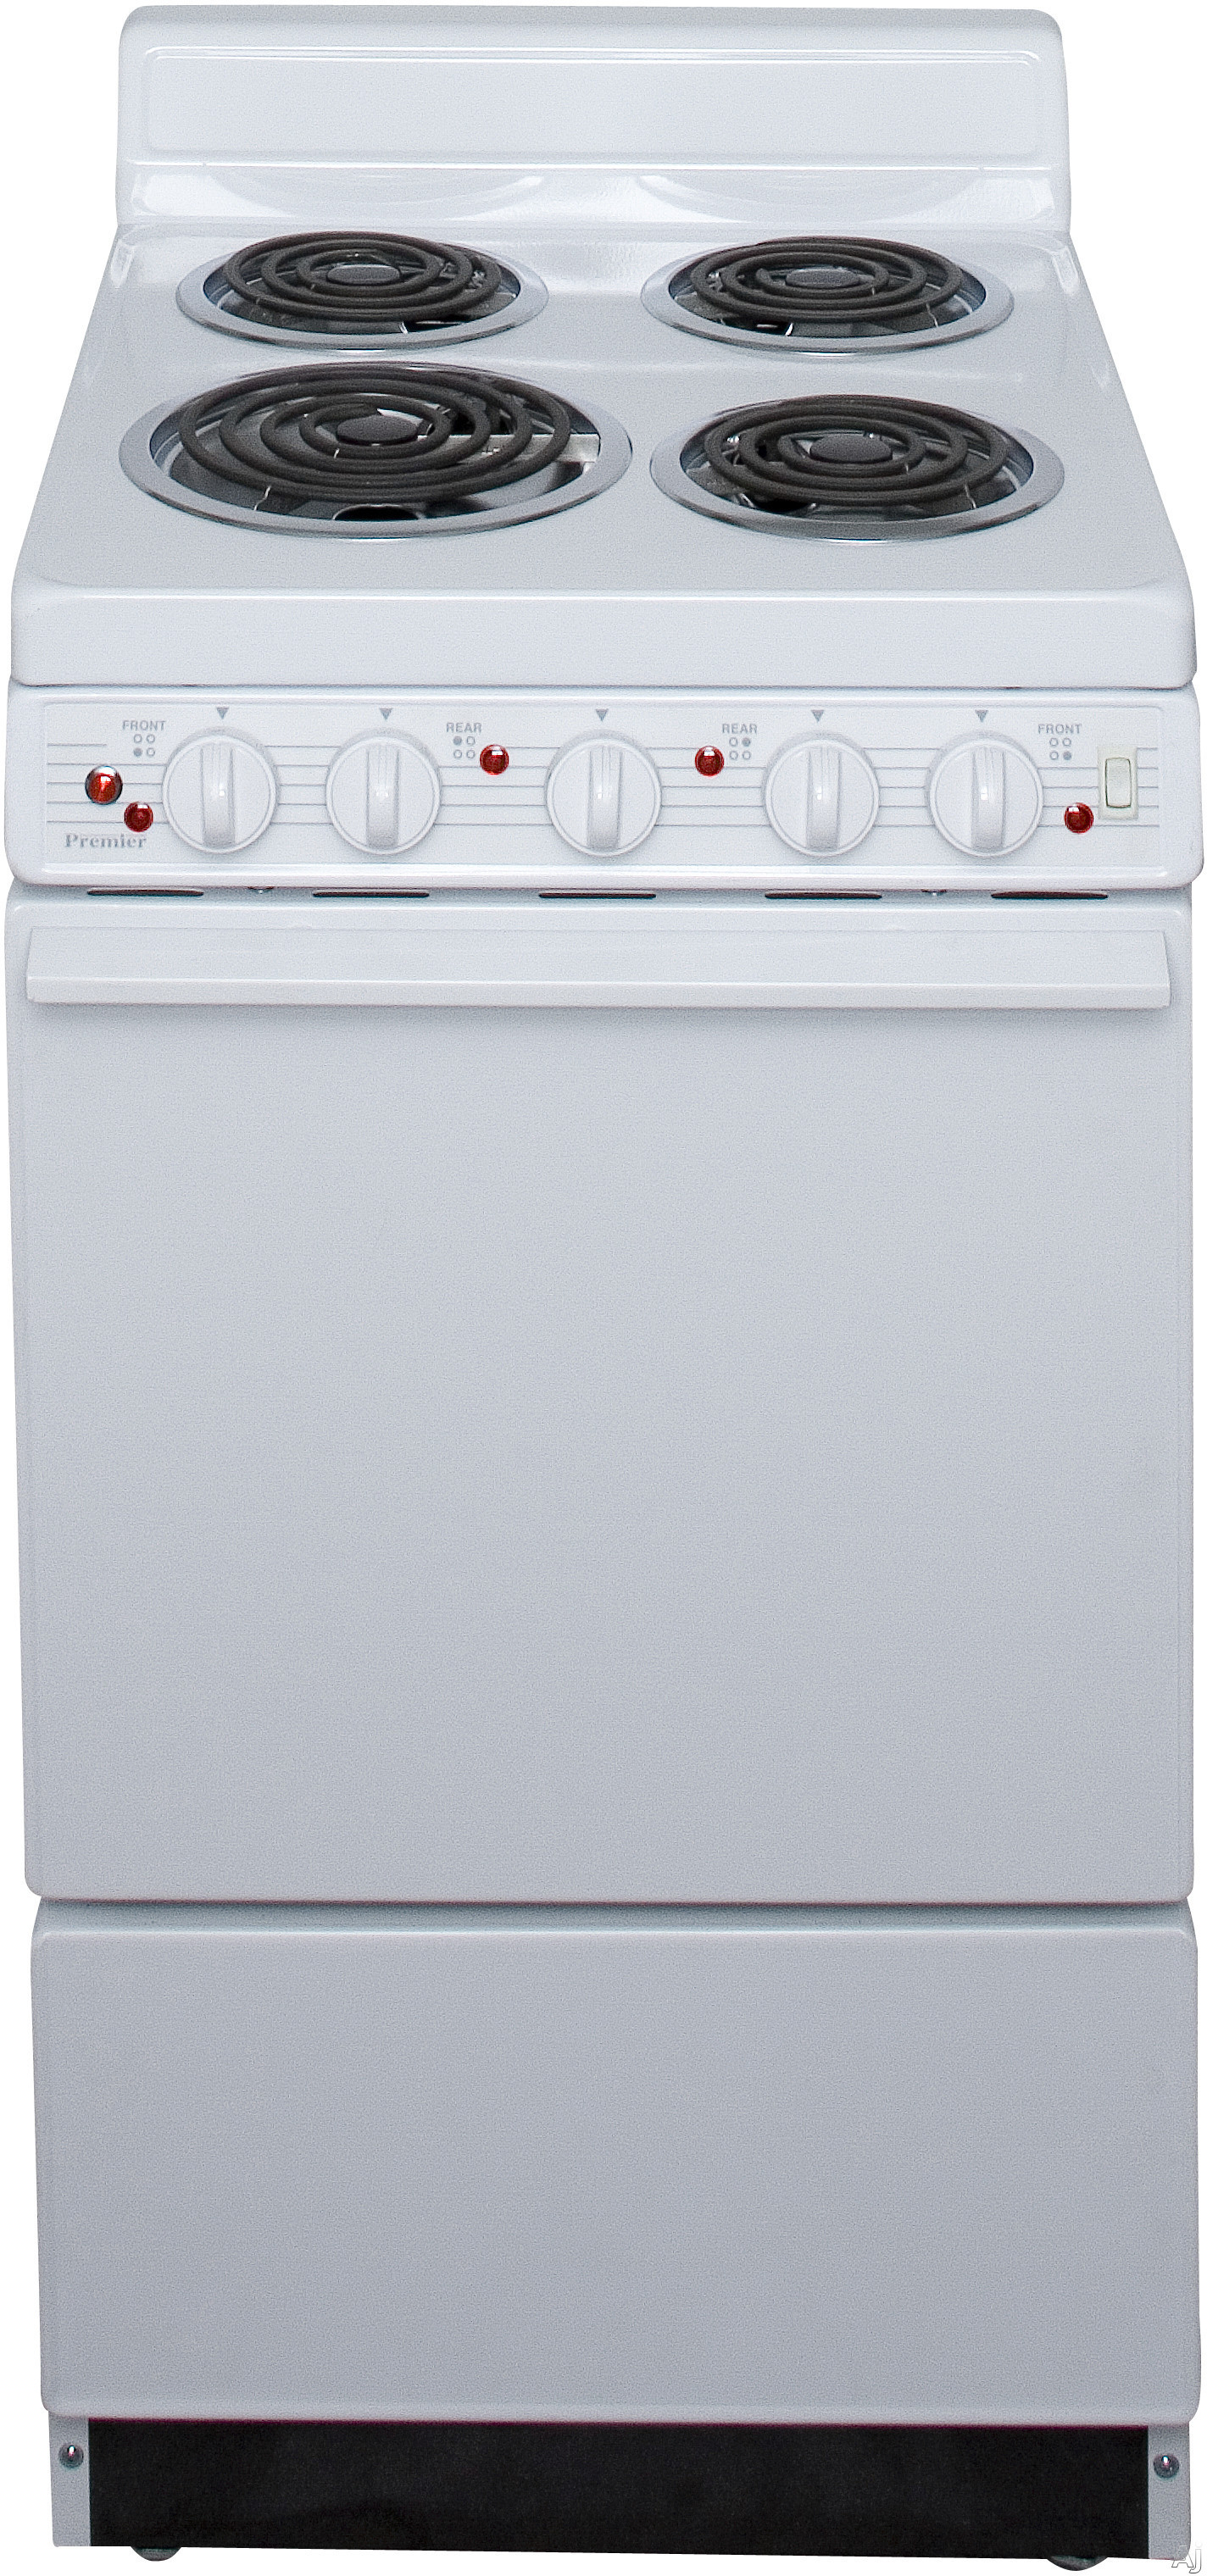 20 Inch Freestanding Electric Range